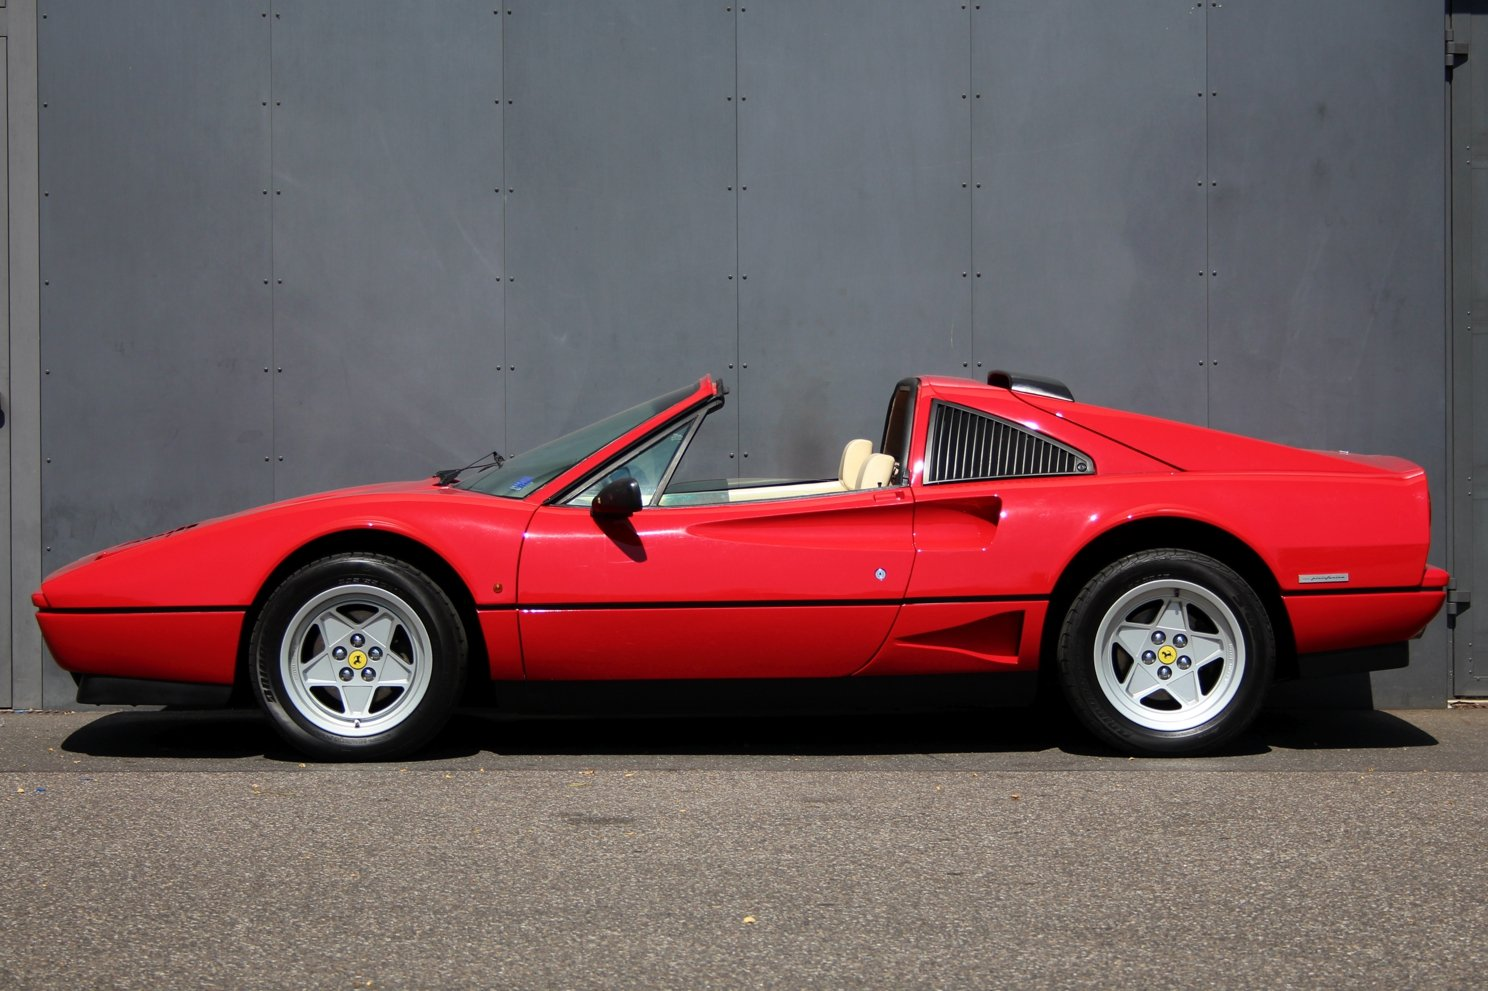 1986 Ferrari 208 GTB Turbo LHD For Sale (picture 5 of 6)